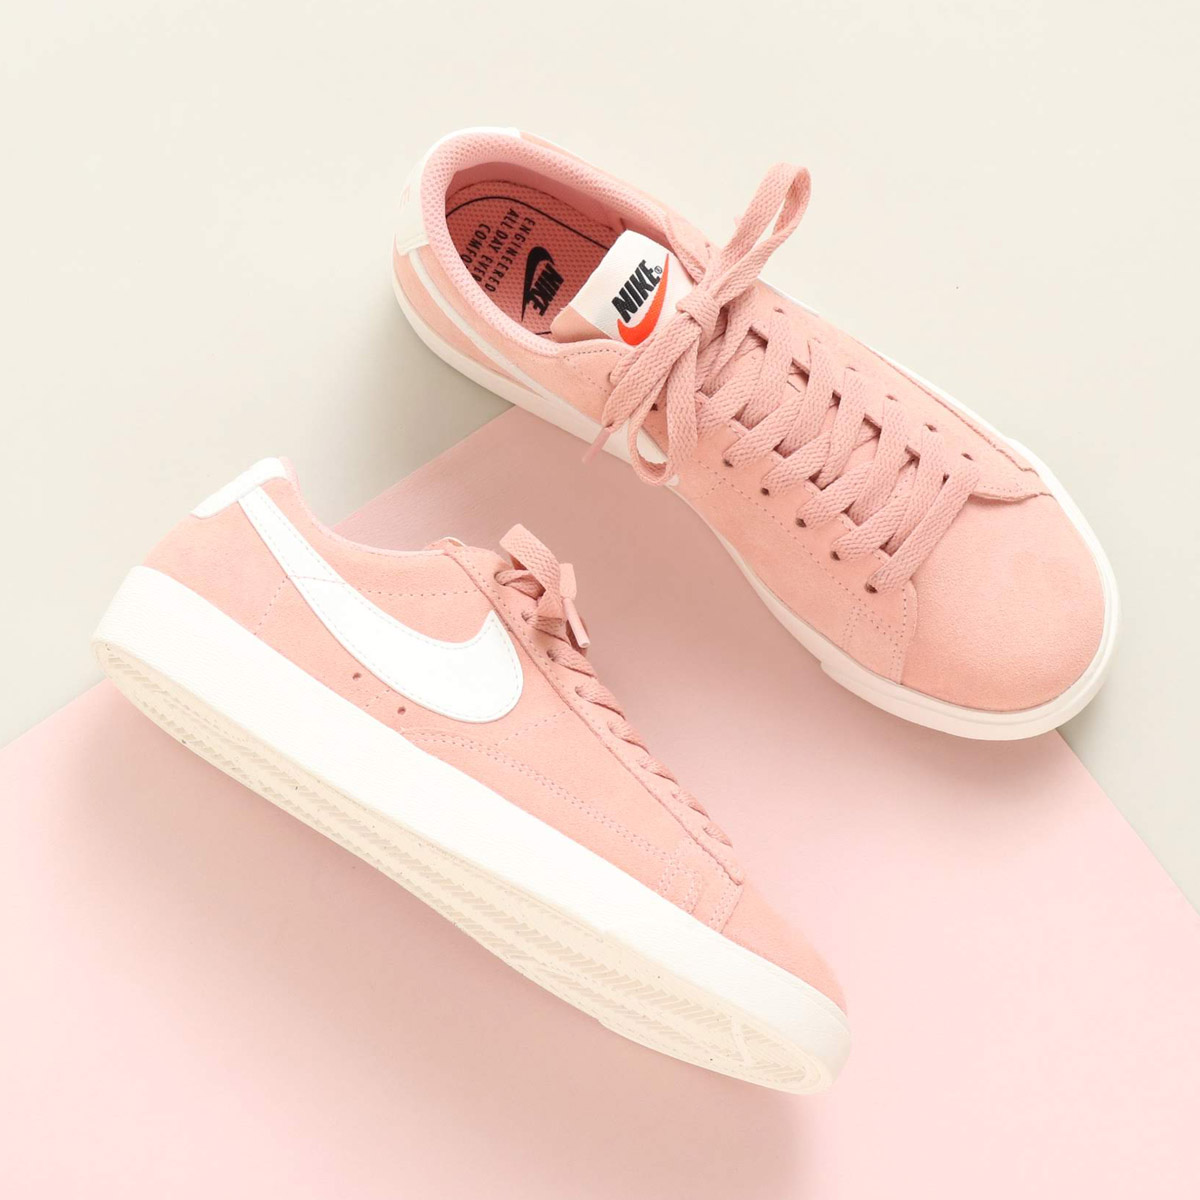 sale retailer 192f6 3bb70 NIKE W BLAZER LOW SD (ナイキウィメンズブレーザーロー SD) CORAL STARDUST SAIL-SAIL 18SS-I